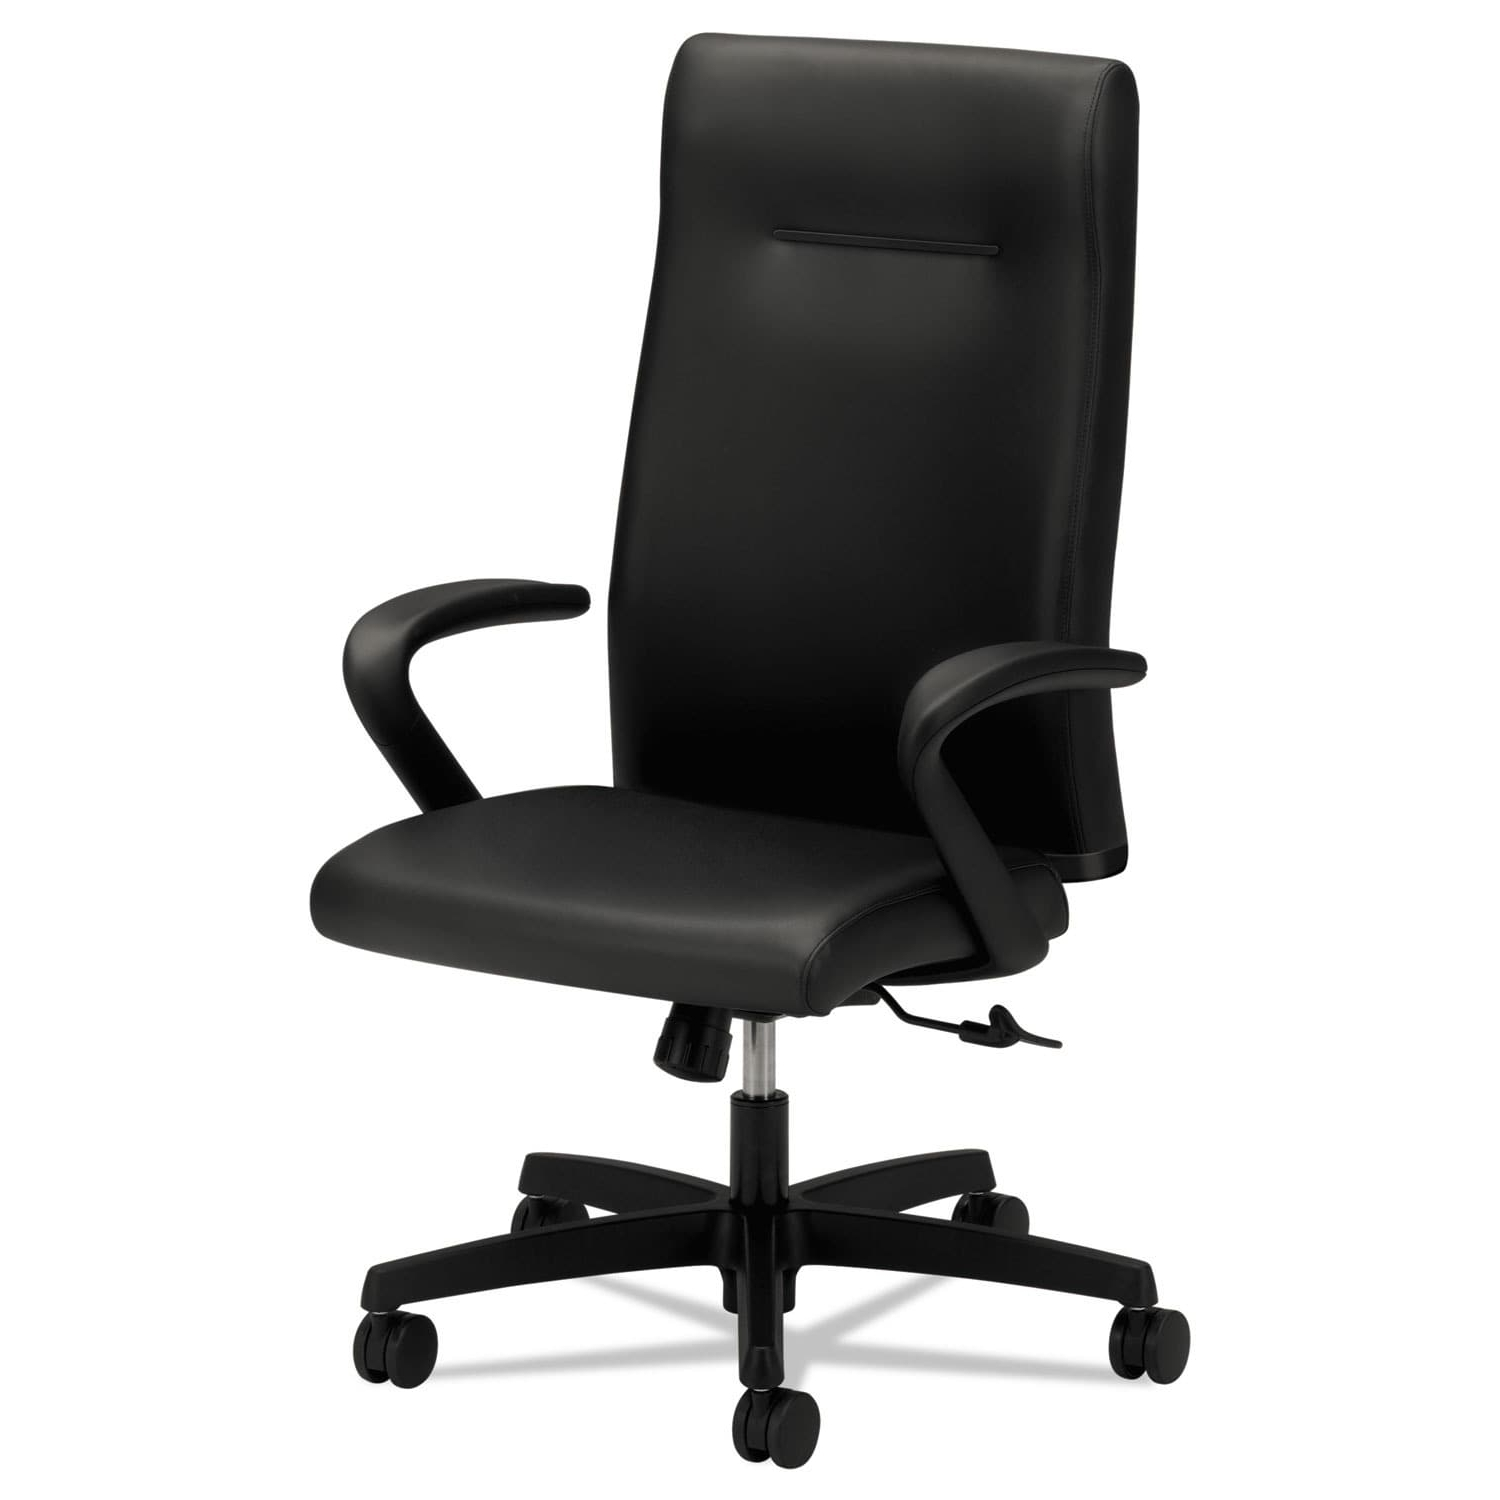 Hon Executive Office Chairs For Most Popular Hon Ignition Series Executive High Back Chair, Black Leather (View 7 of 20)